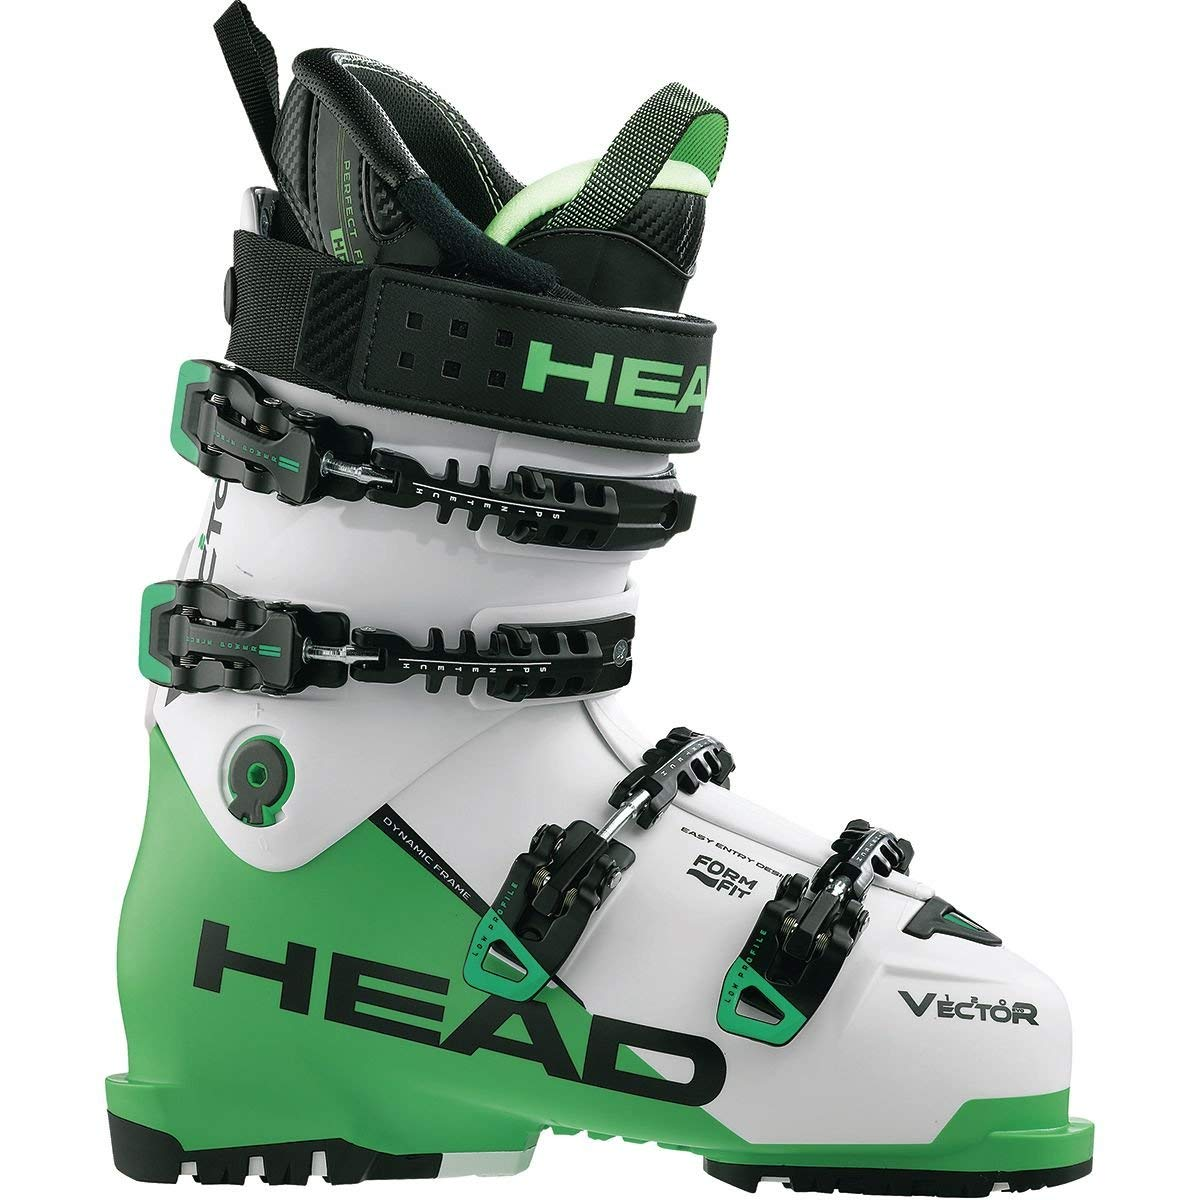 10a1d1bd12 Get Quotations · Head Skis USA Vector Evo 120 Ski Boot - Men s Black  Anthracite-Green